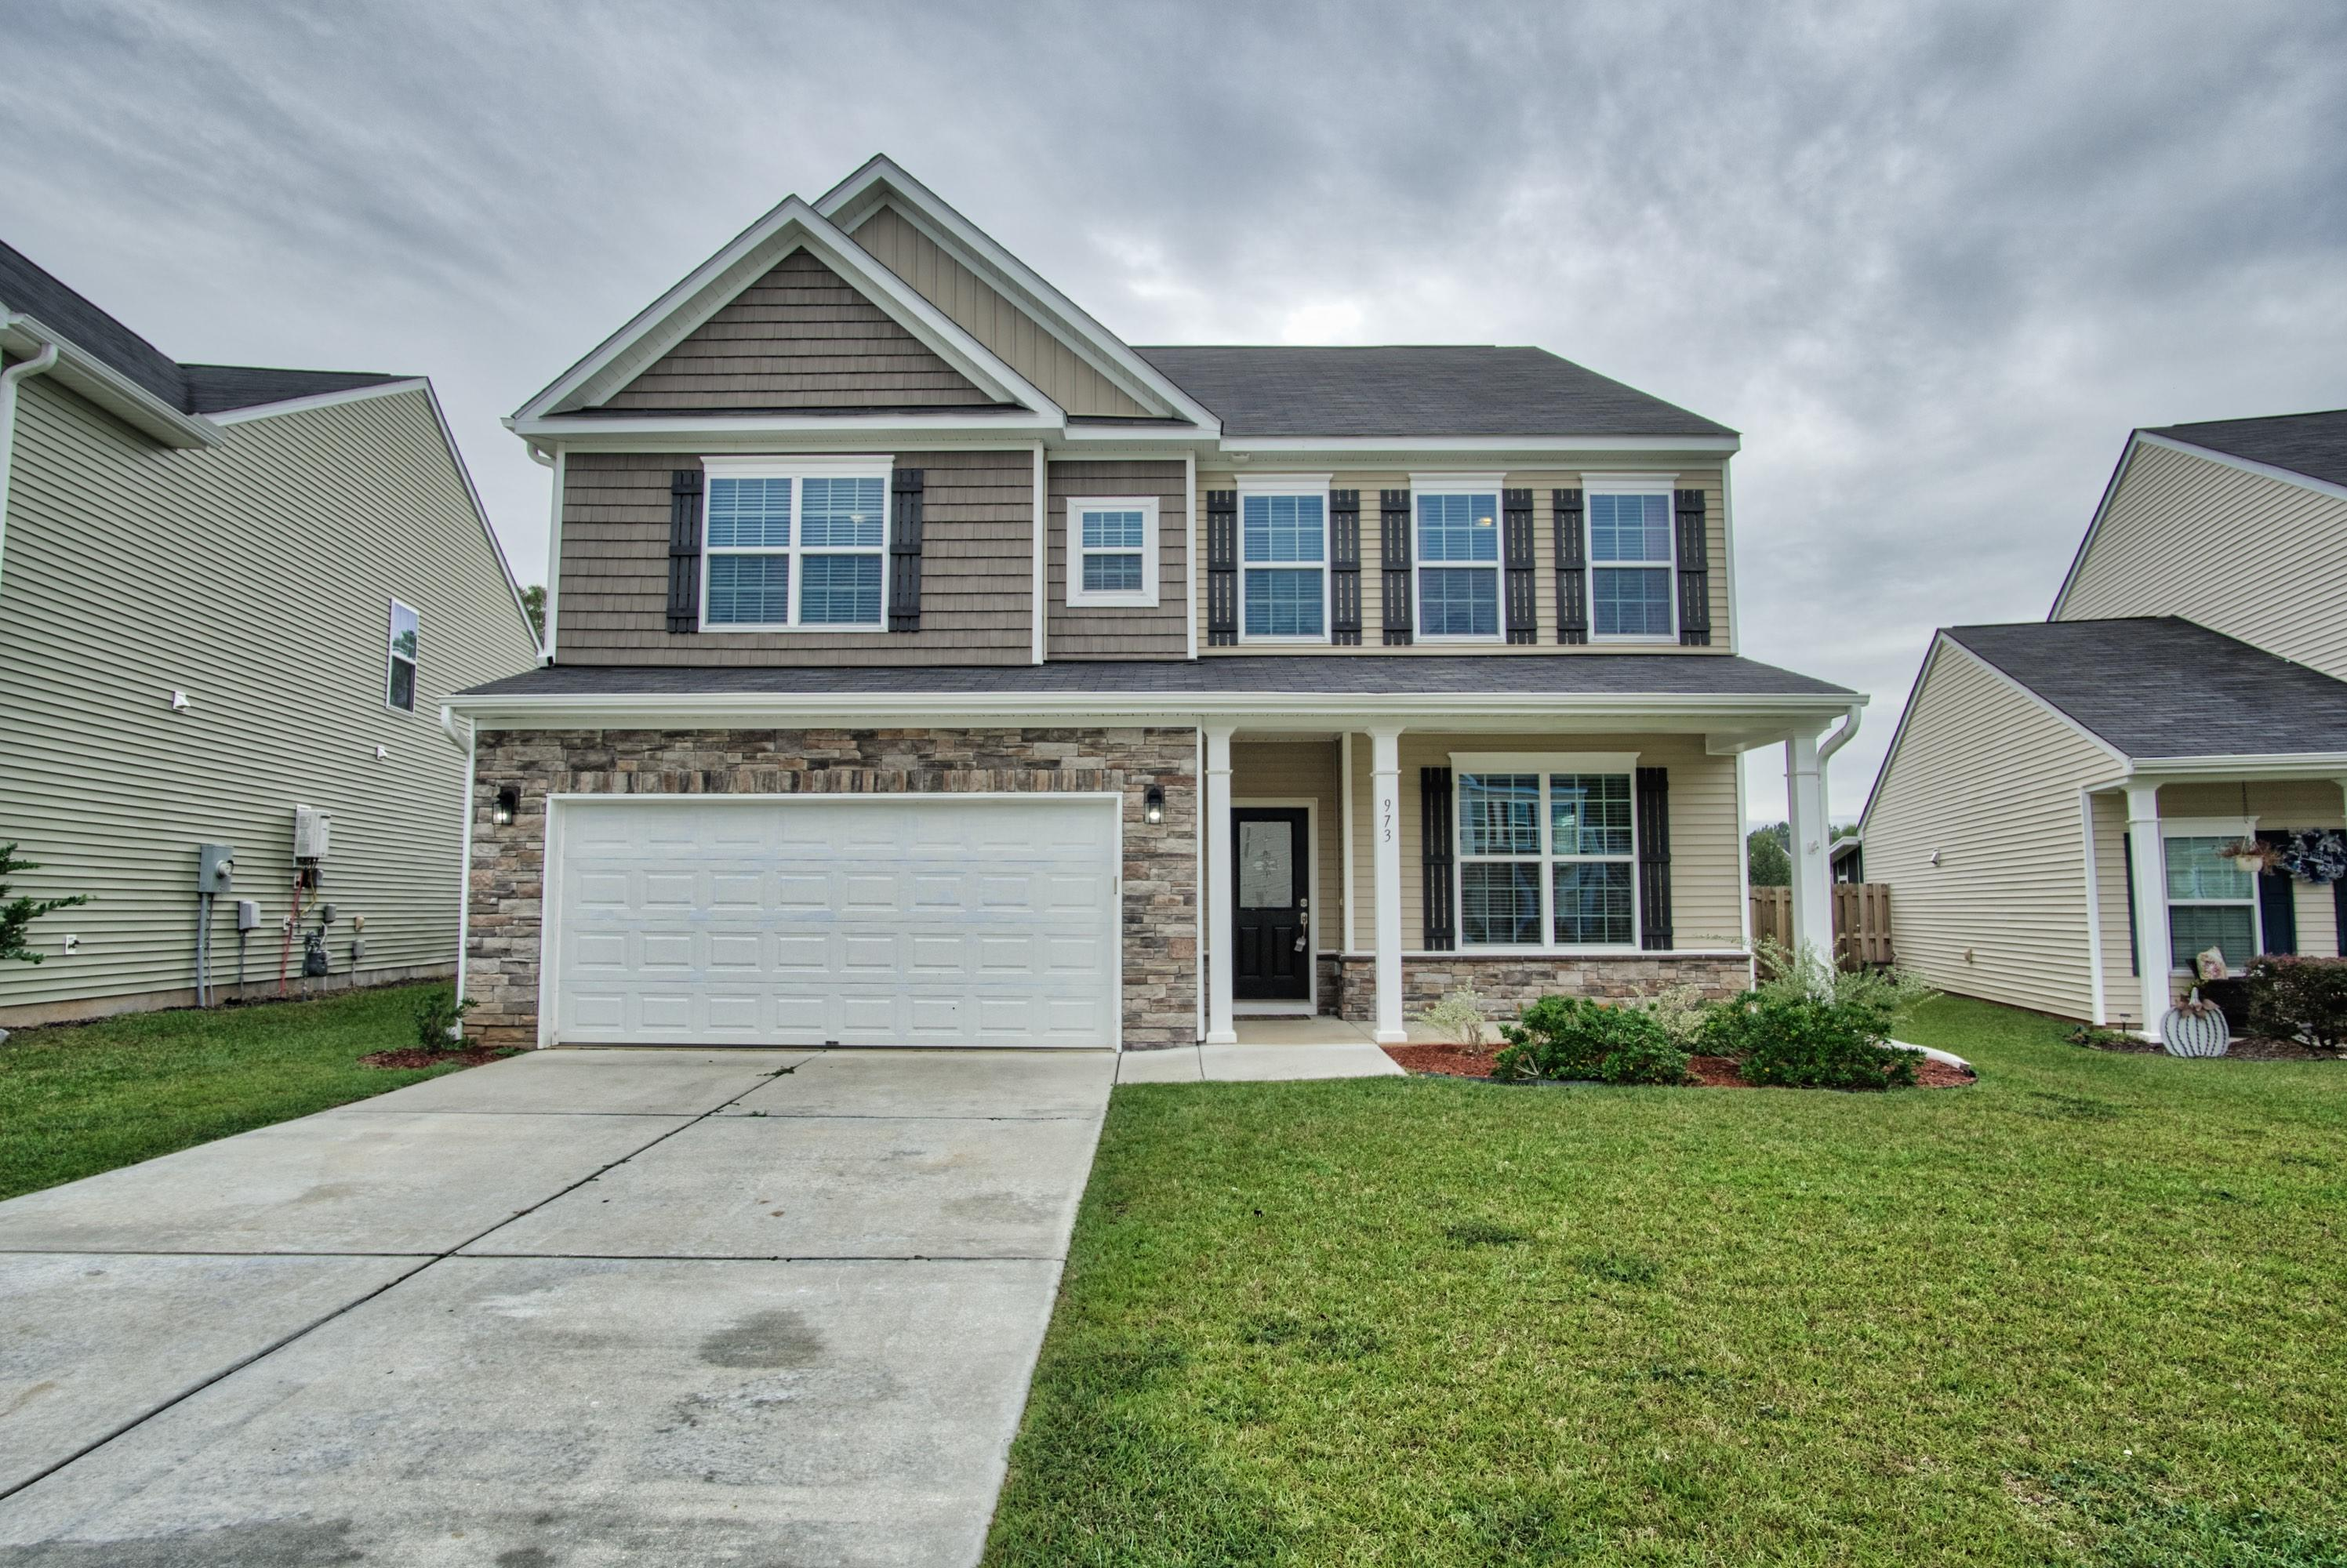 973 Cedarfield Lane Summerville, Sc 29483